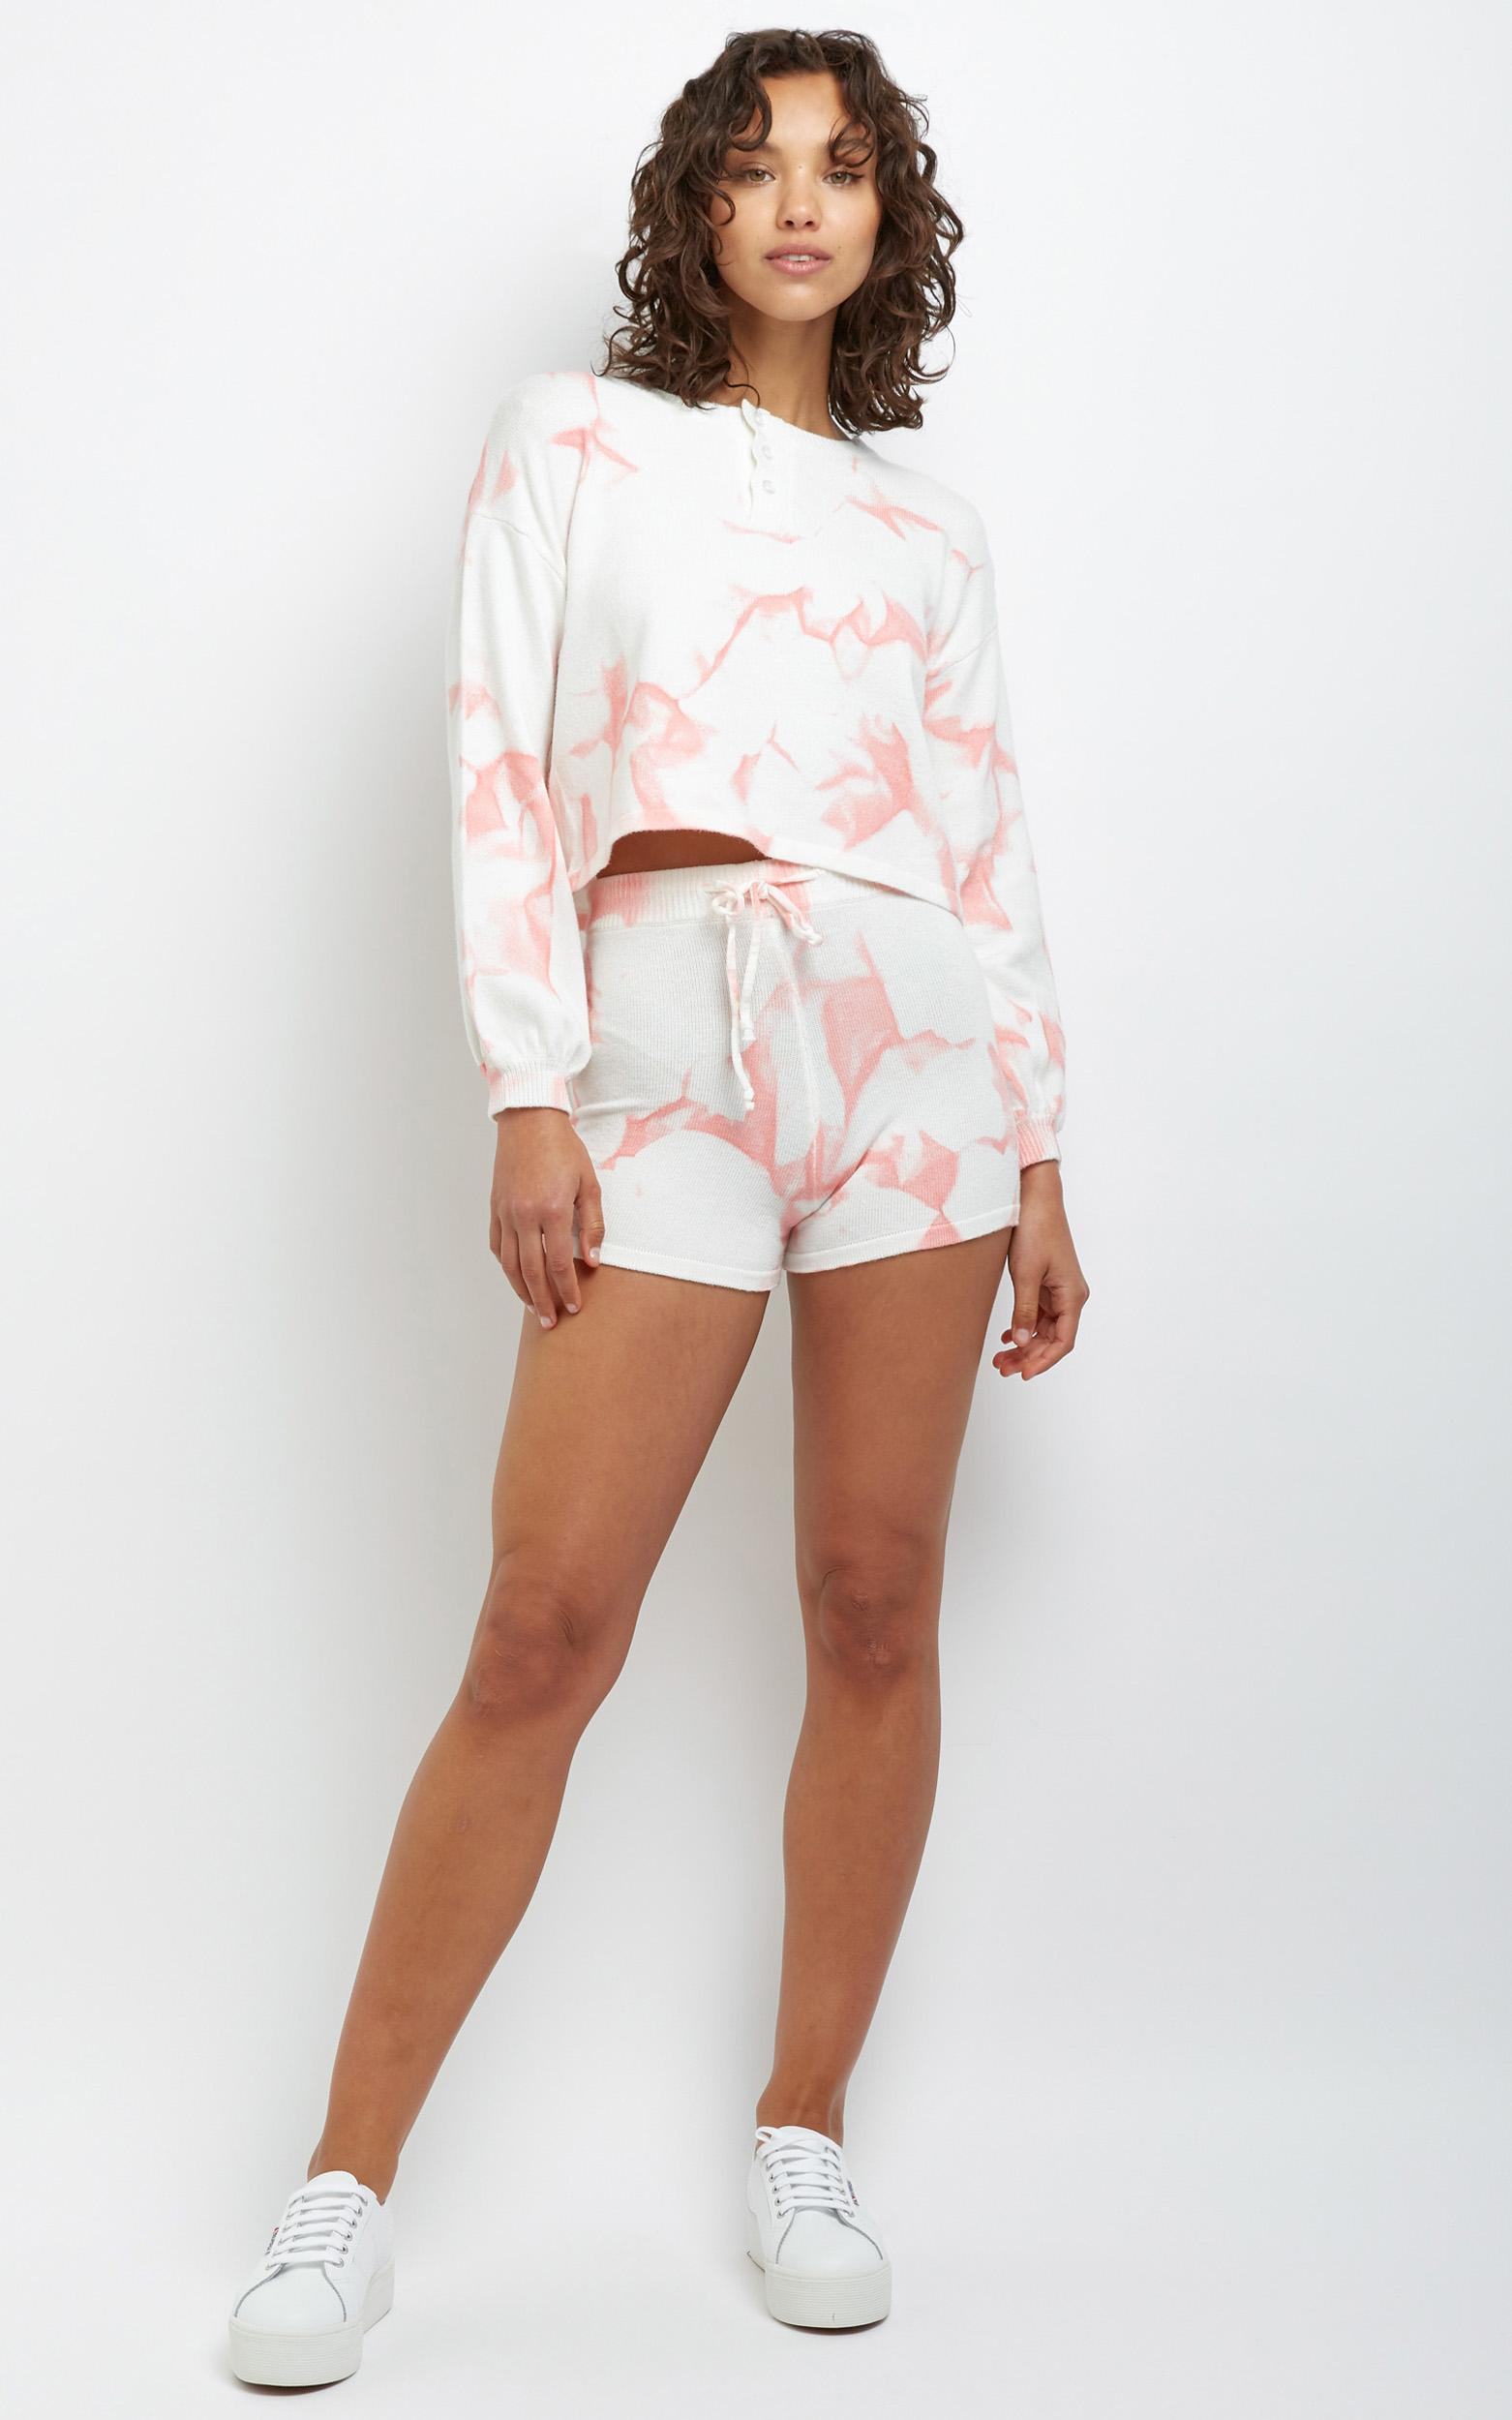 Damara Jumper in Pink - L, PNK1, hi-res image number null